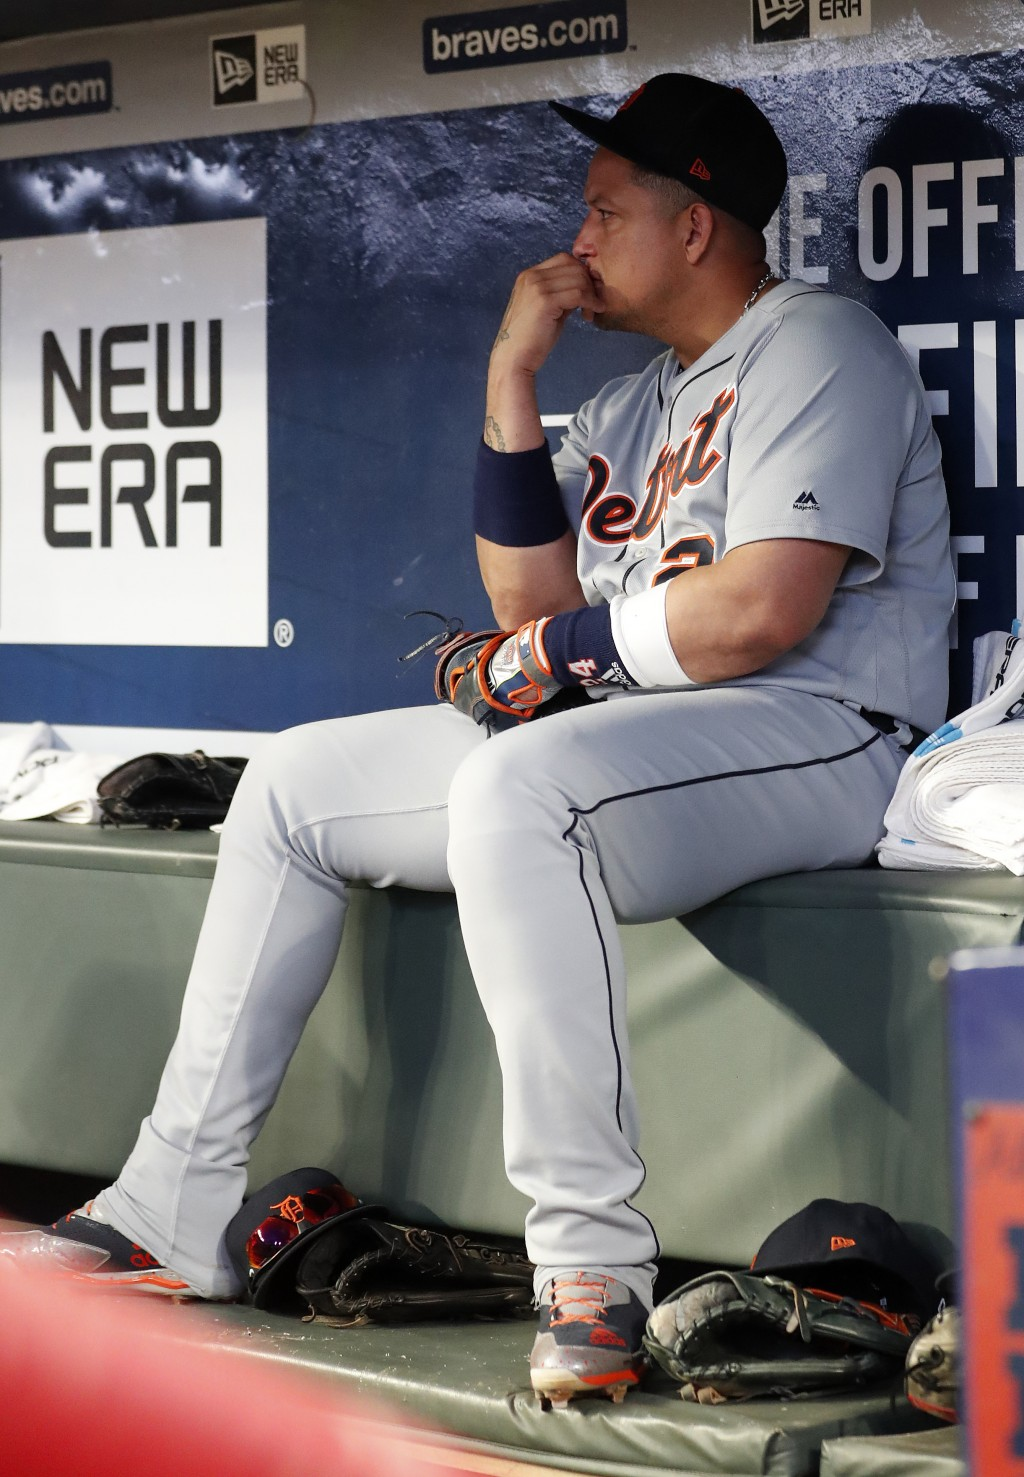 Detroit Tigers first baseman Miguel Cabrera sits in the dugout before being replaced in the lineup during the seventh inning of a baseball game agains...